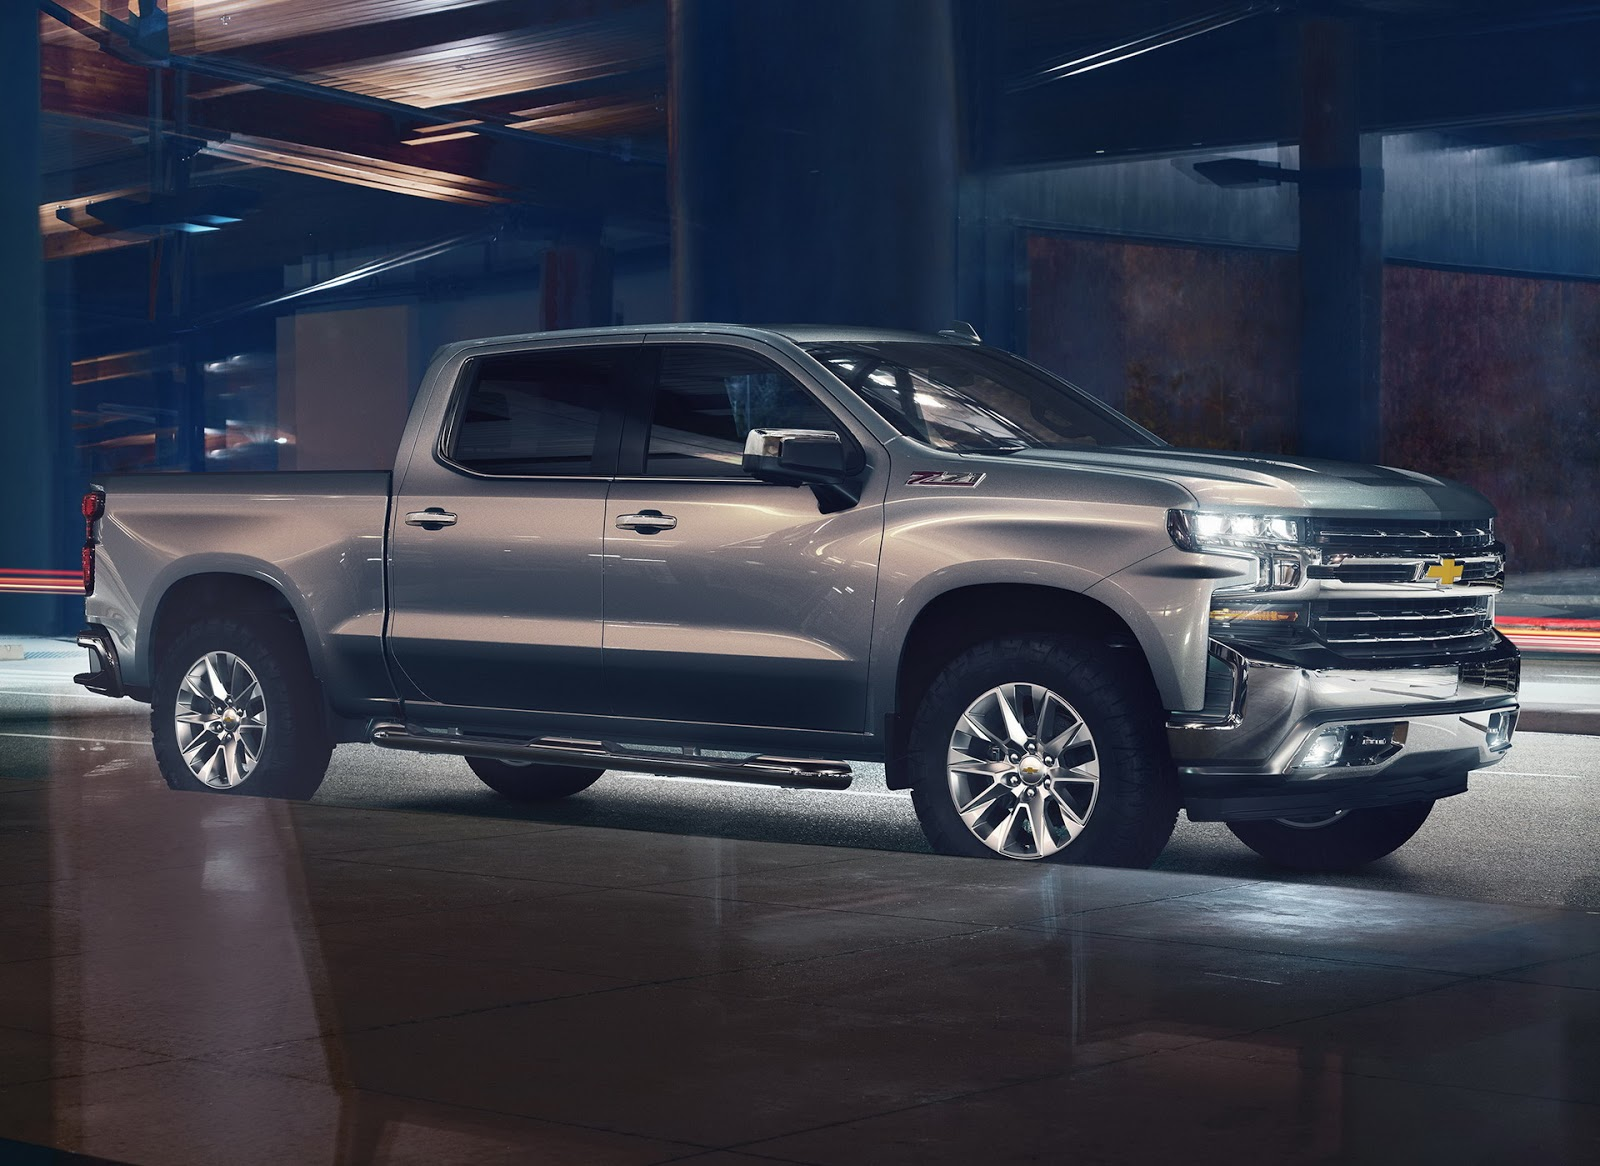 Ford F 150 3.0 Diesel >> Fourtitude.com - Next-gen 2019 Chevrolet Silverado 1500 unveiled — All new from the ground up ...